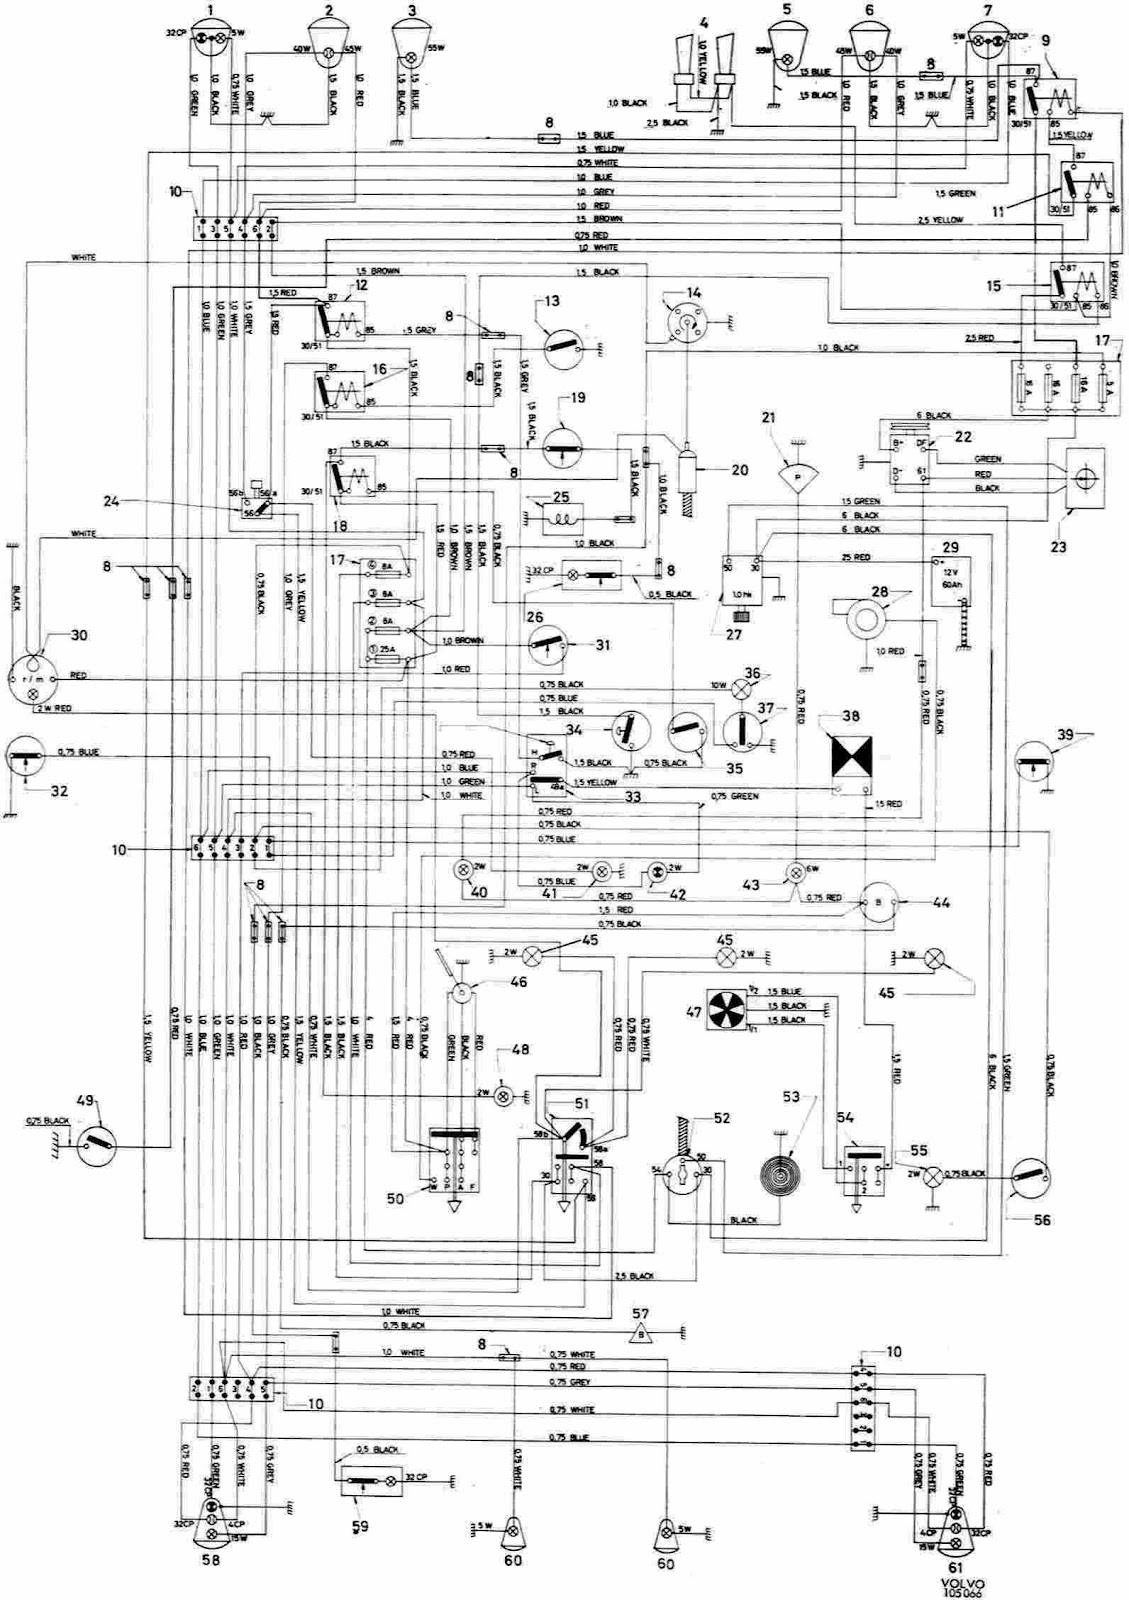 1997 volvo engine diagram best wiring library Volvo S60 White volvo s80 wiring diagram wiring diagram library chevrolet volt wiring diagram 1997 volvo v70 wiring diagram